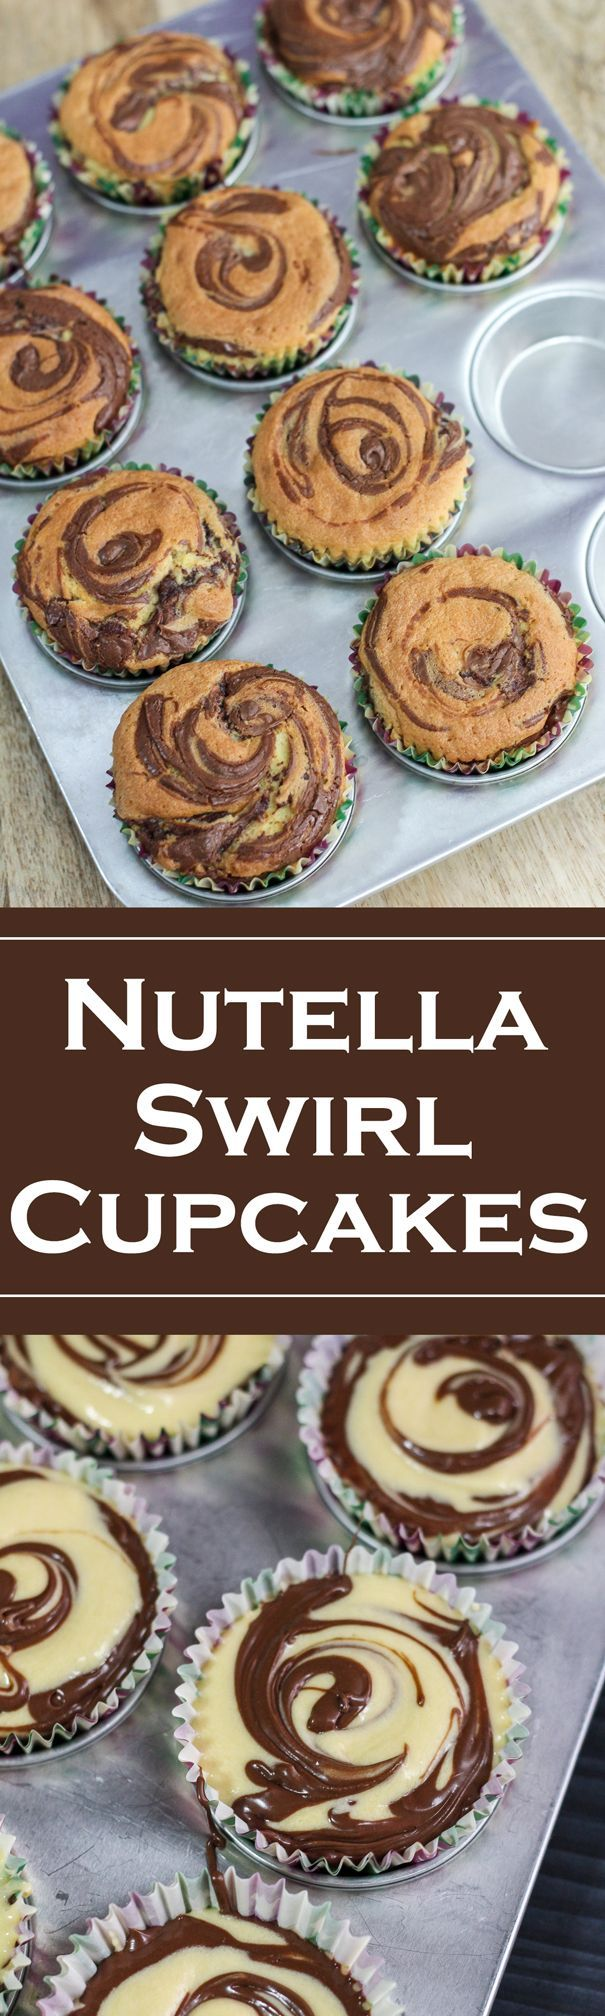 1000+ ideas about Nutella Cupcakes on Pinterest | Nutella, Cupcake and ...